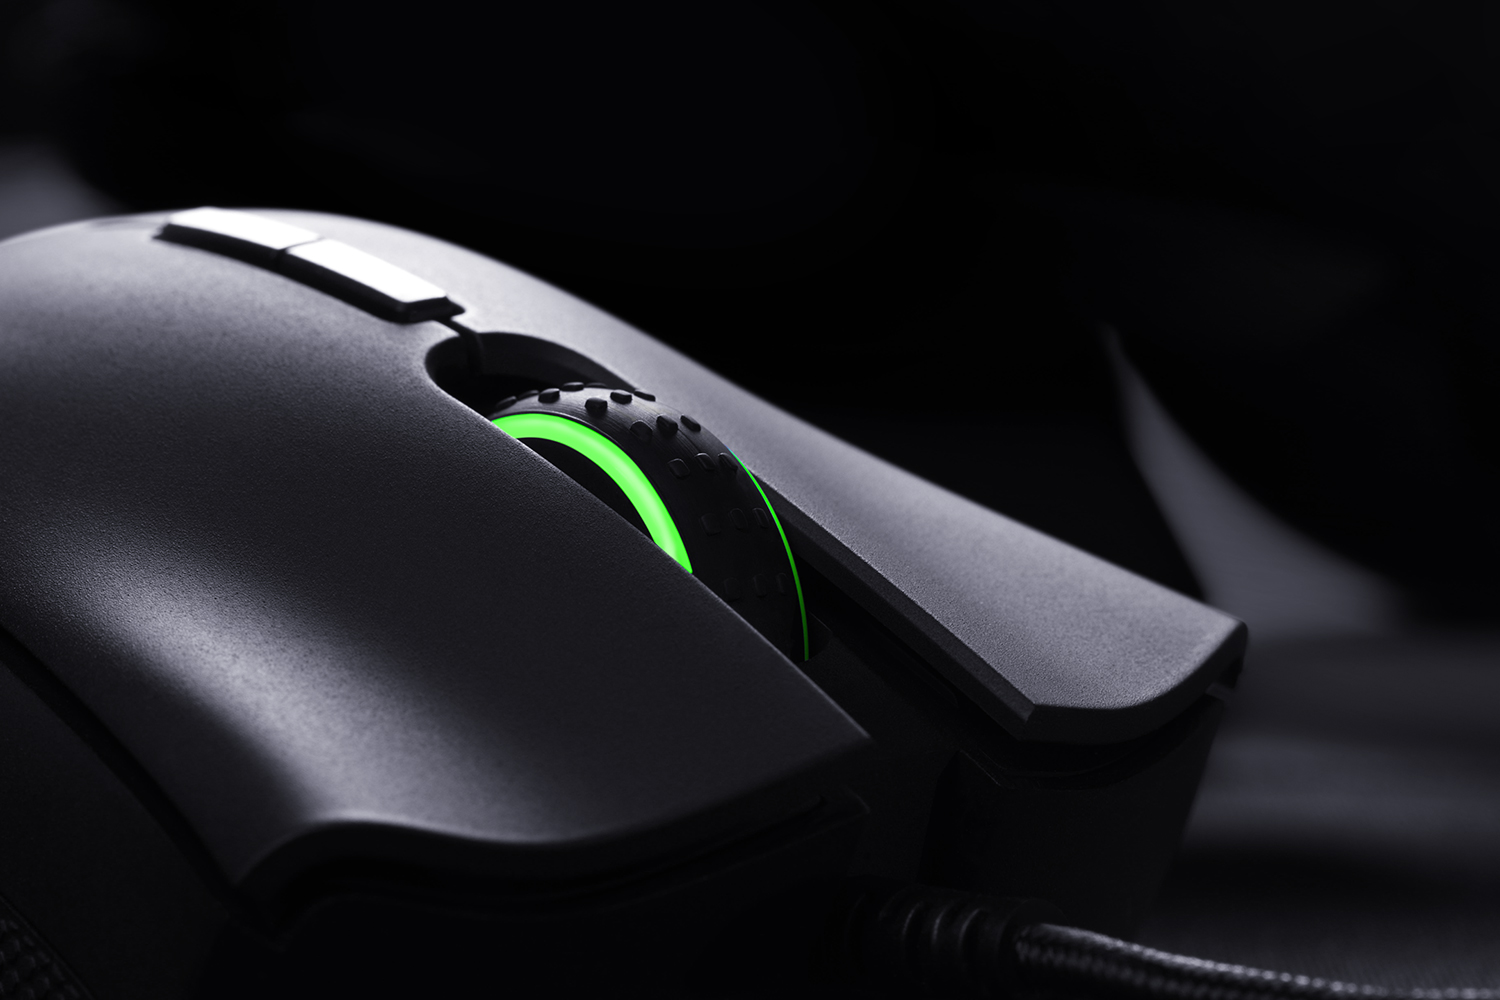 Review: The Razer DeathAdder Elite is just about the perfect mouse